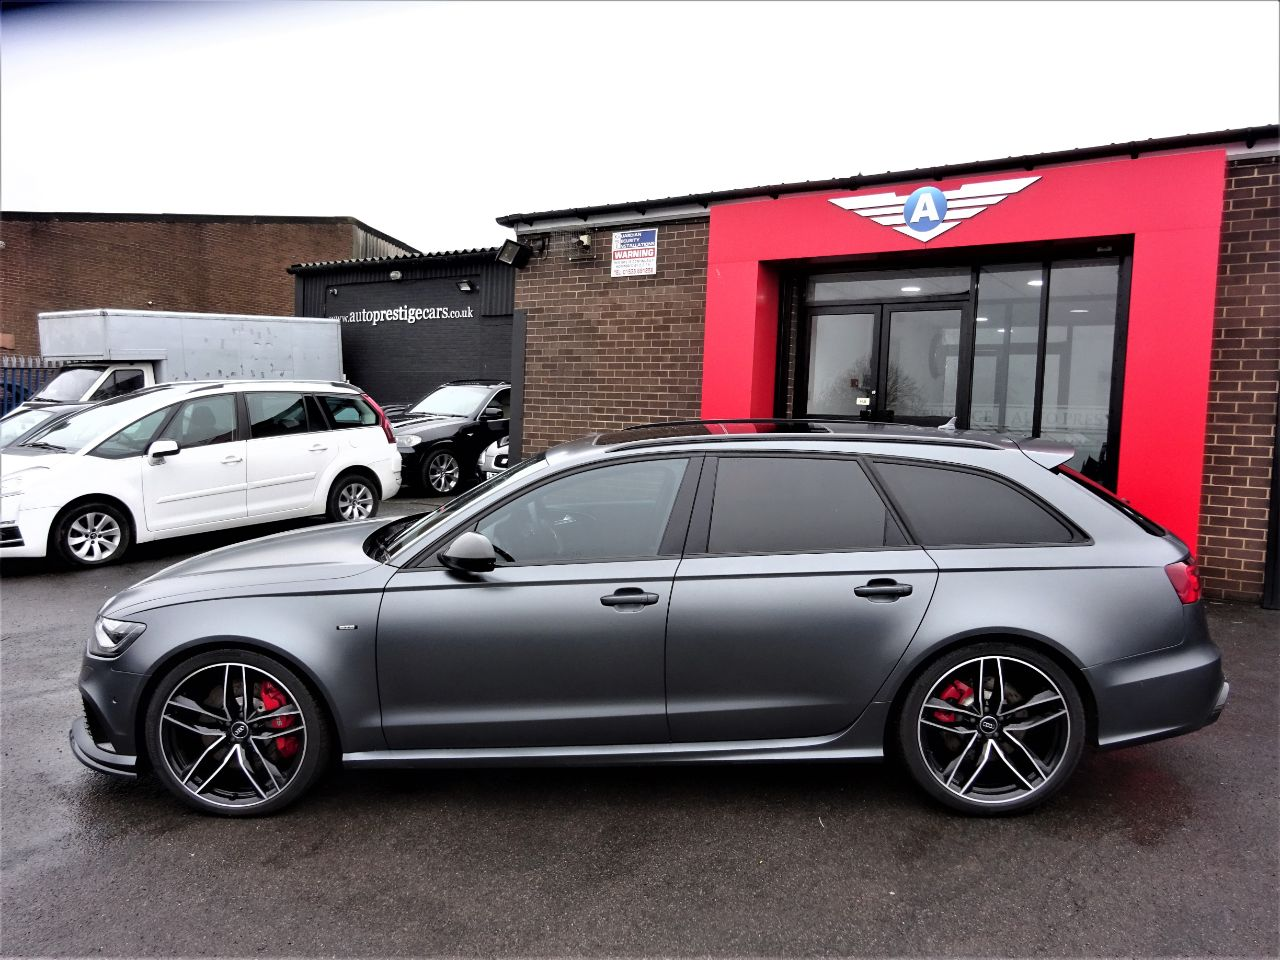 Audi RS6 4.0T FSI V8 Bi-Turbo Quattro 5dr RARE MATT GREY MASSIVE SPECIFICATION CARBON PACK PAN ROOF Estate Petrol Grey